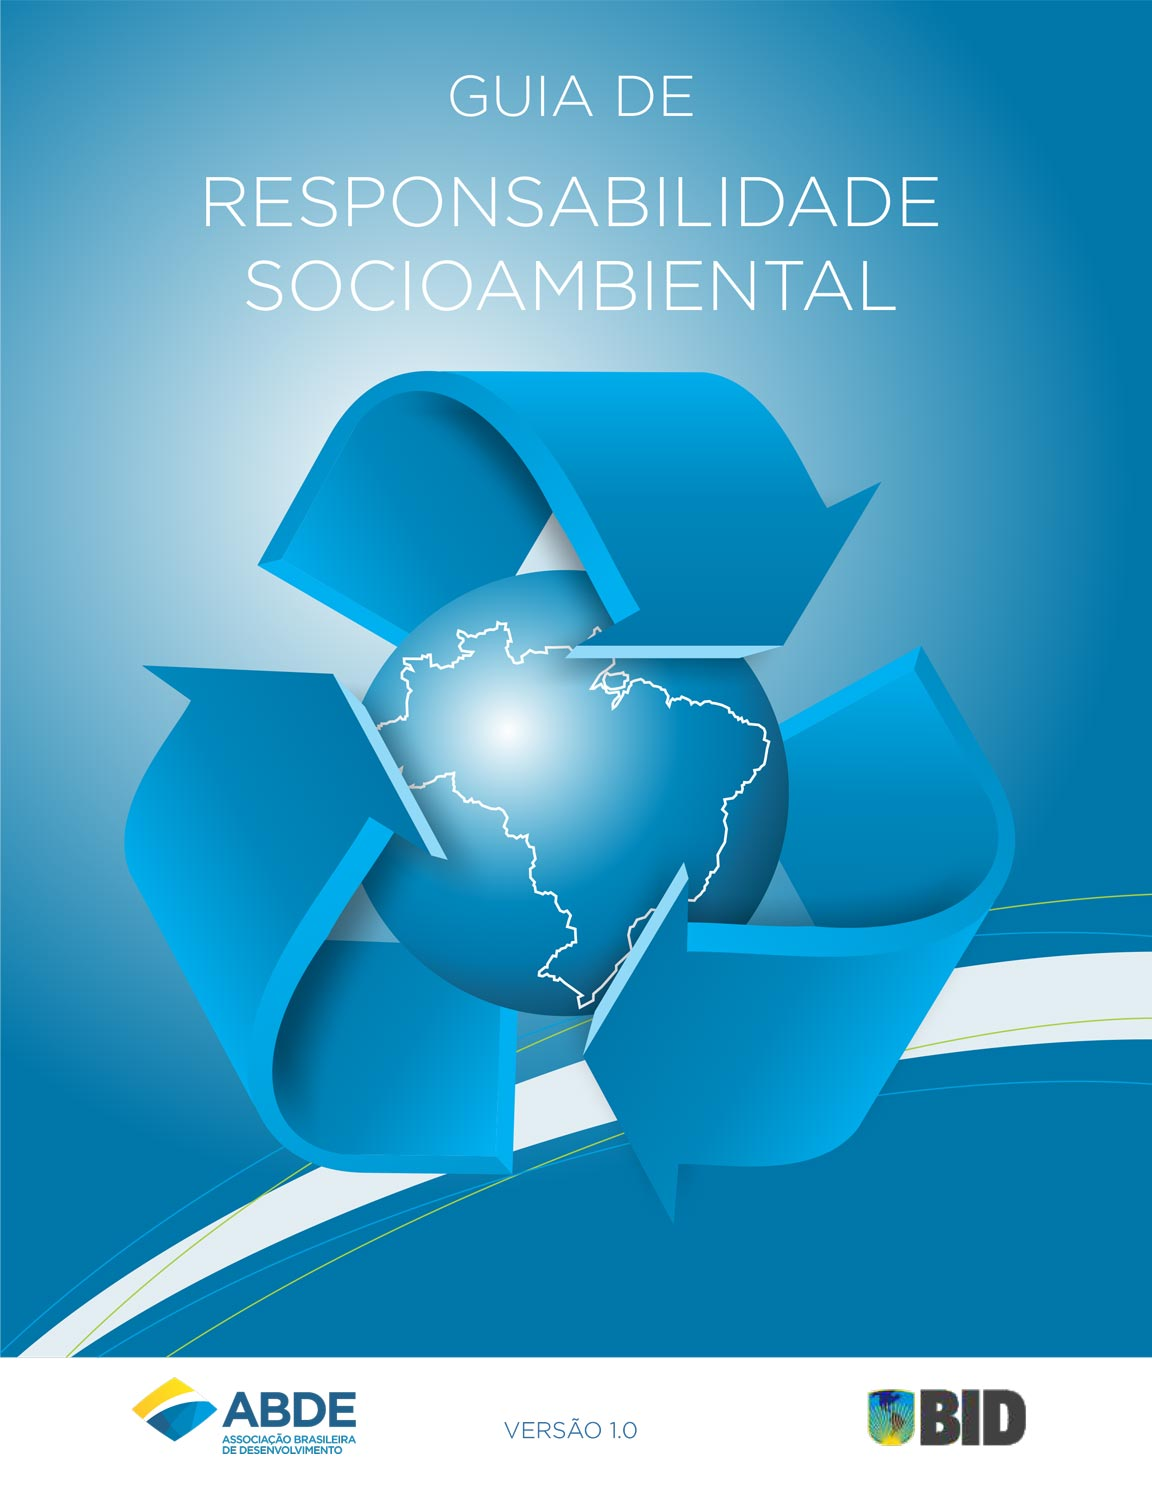 copy-of-guia-de-responsabilidade-socioambiental-1